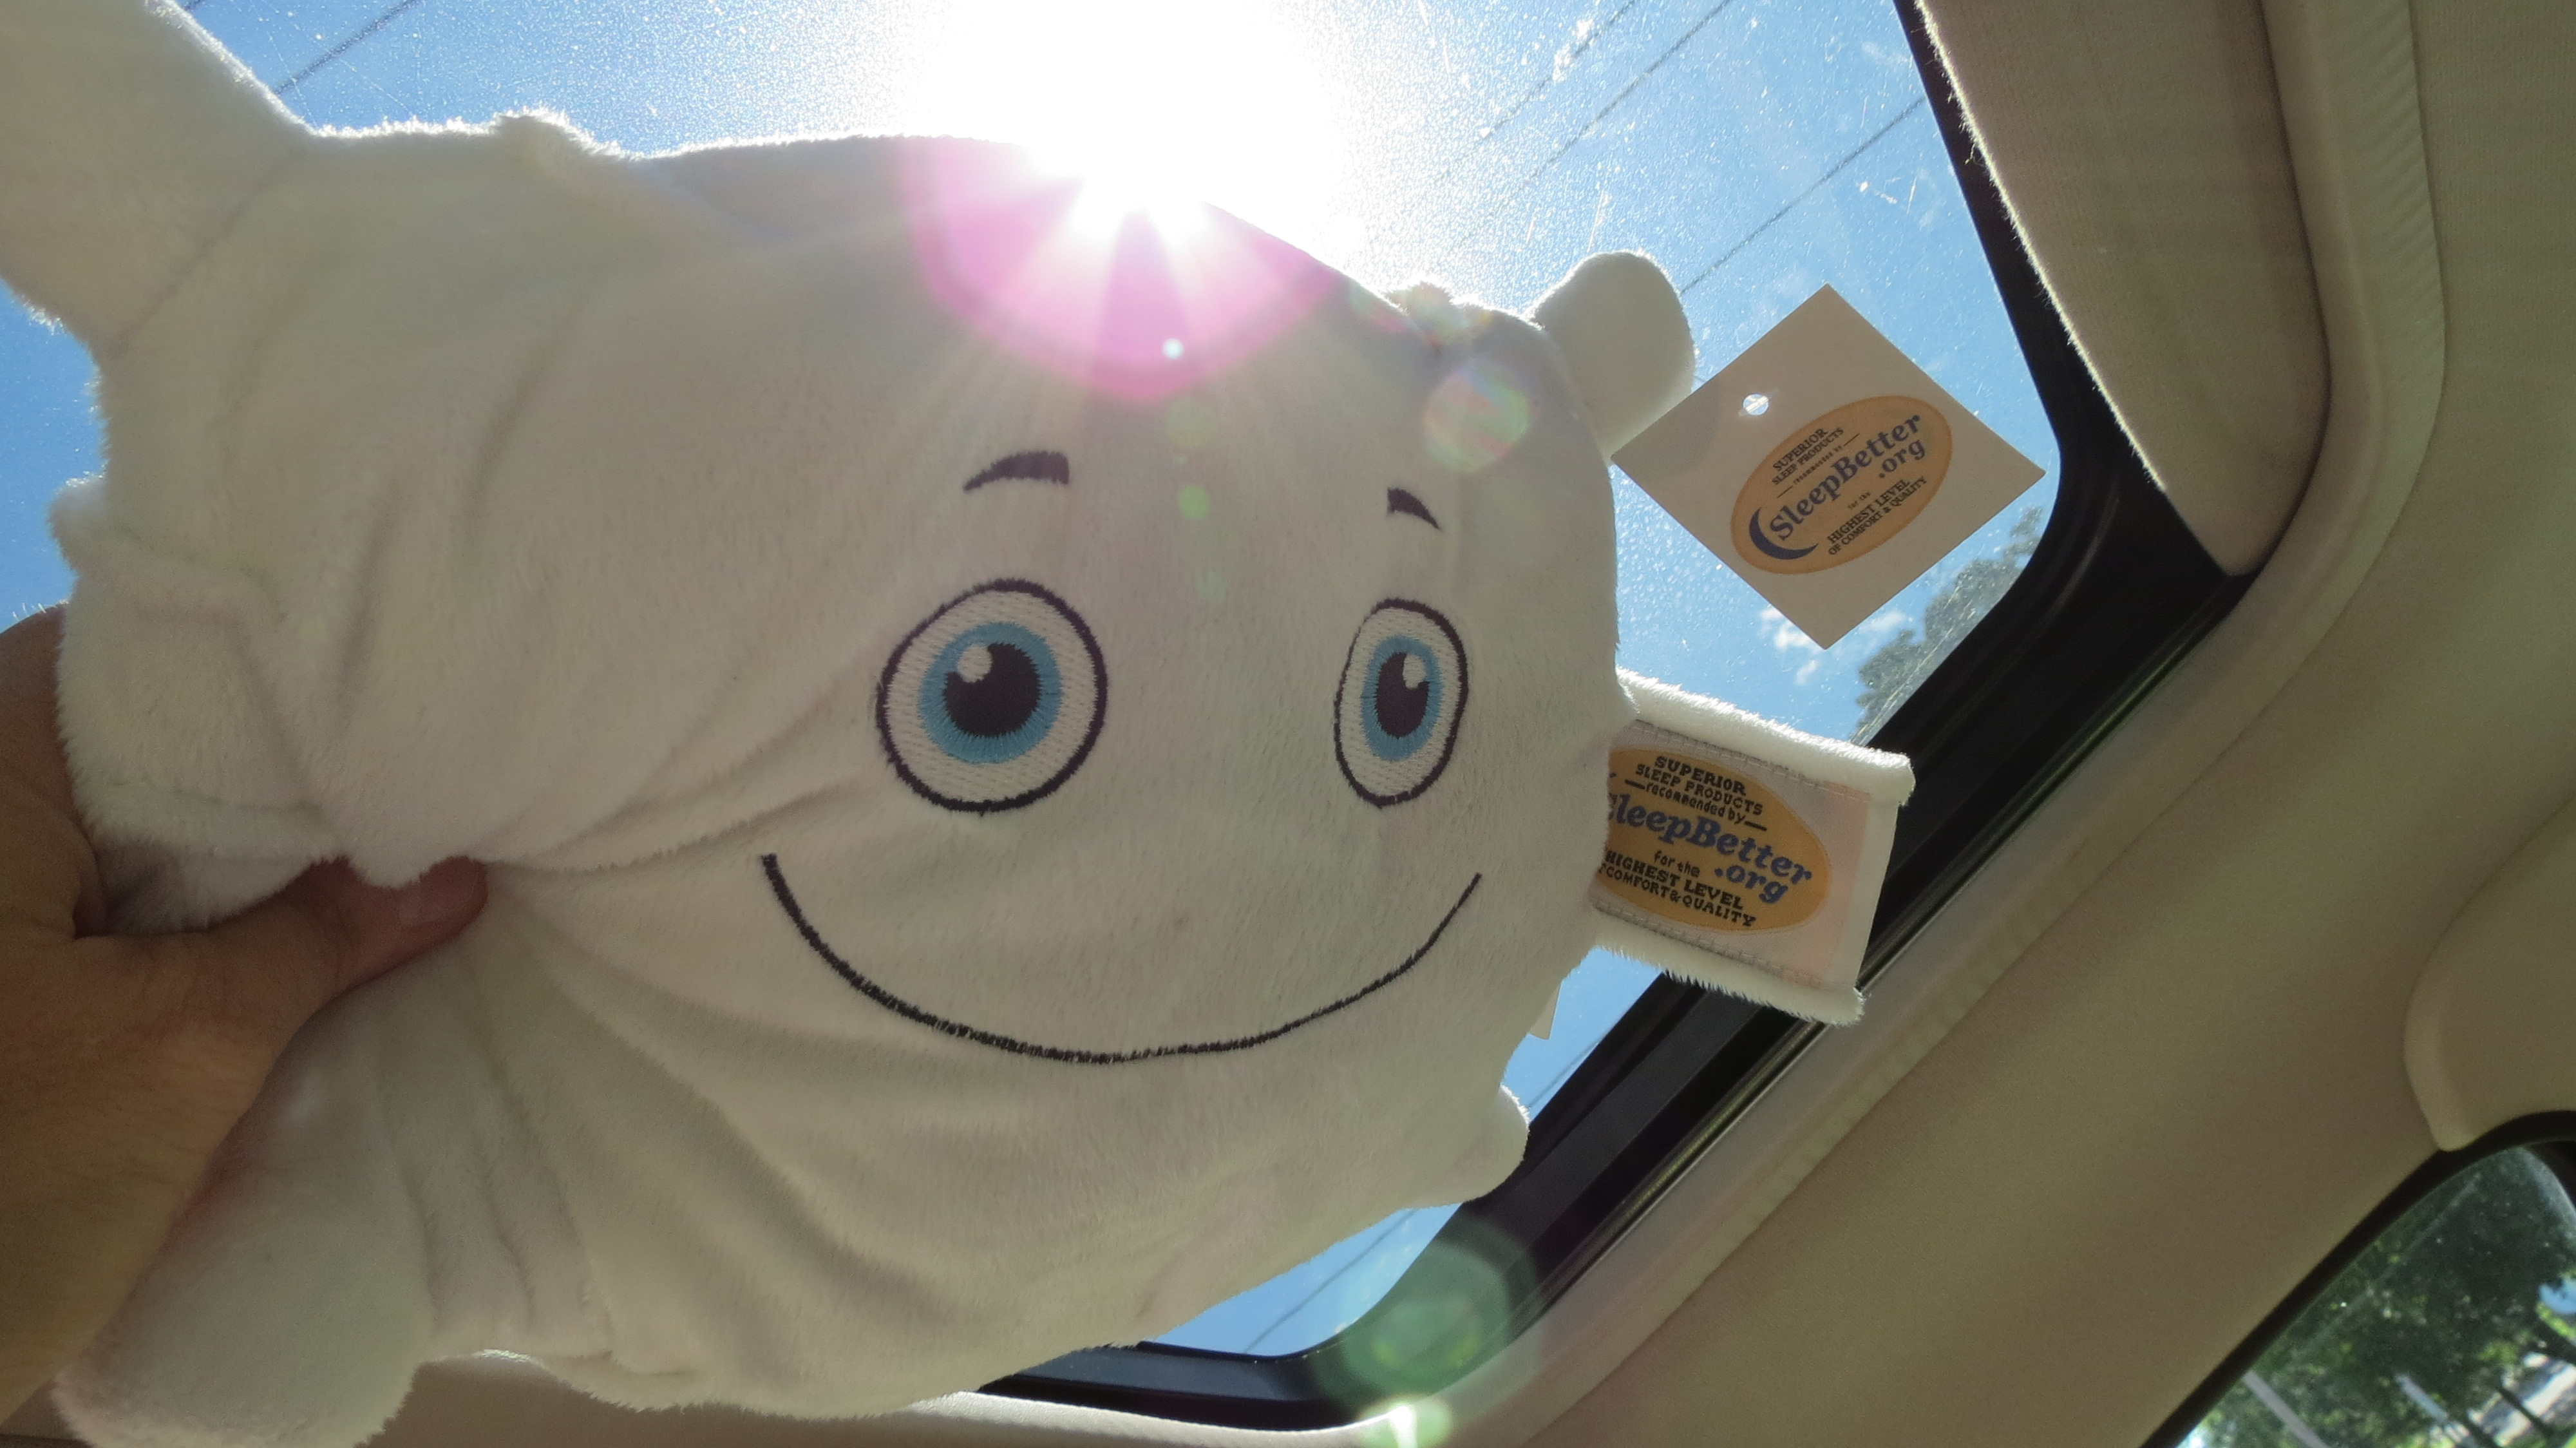 No convertable here, so Phil O. T. Pillow had to settle for a moonroof